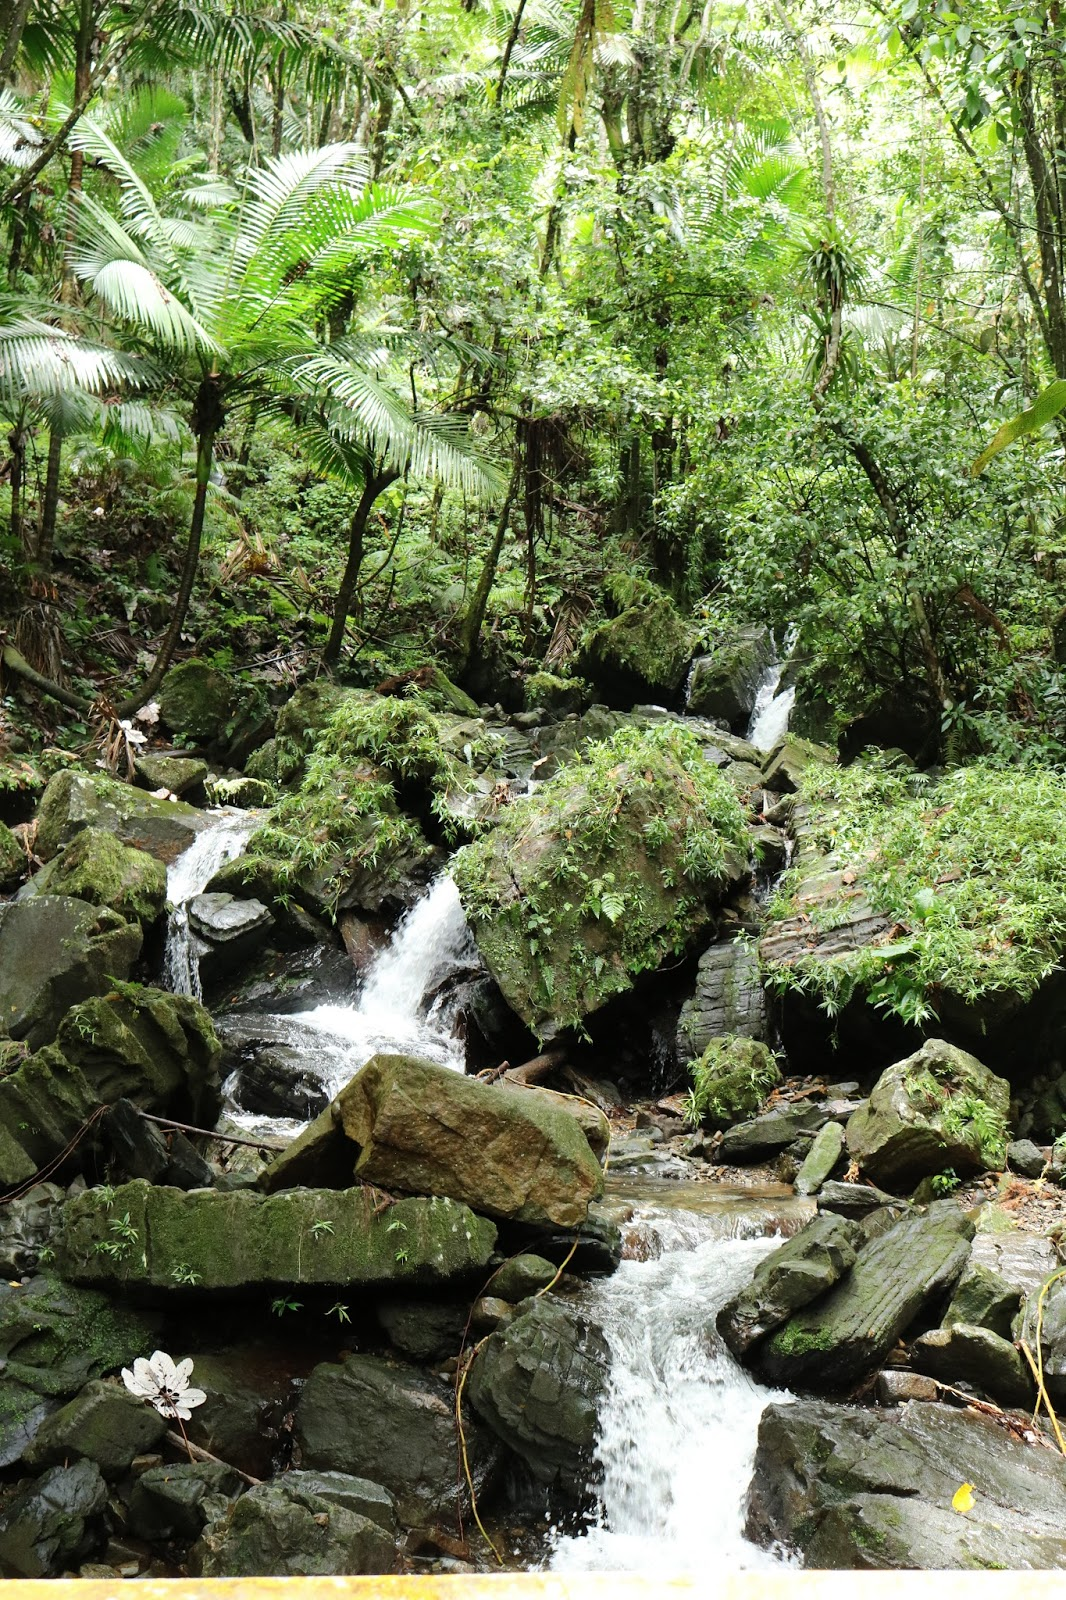 Baño Grande El Yunque:Back and Forth Across the Pond: El Yunque National Forest